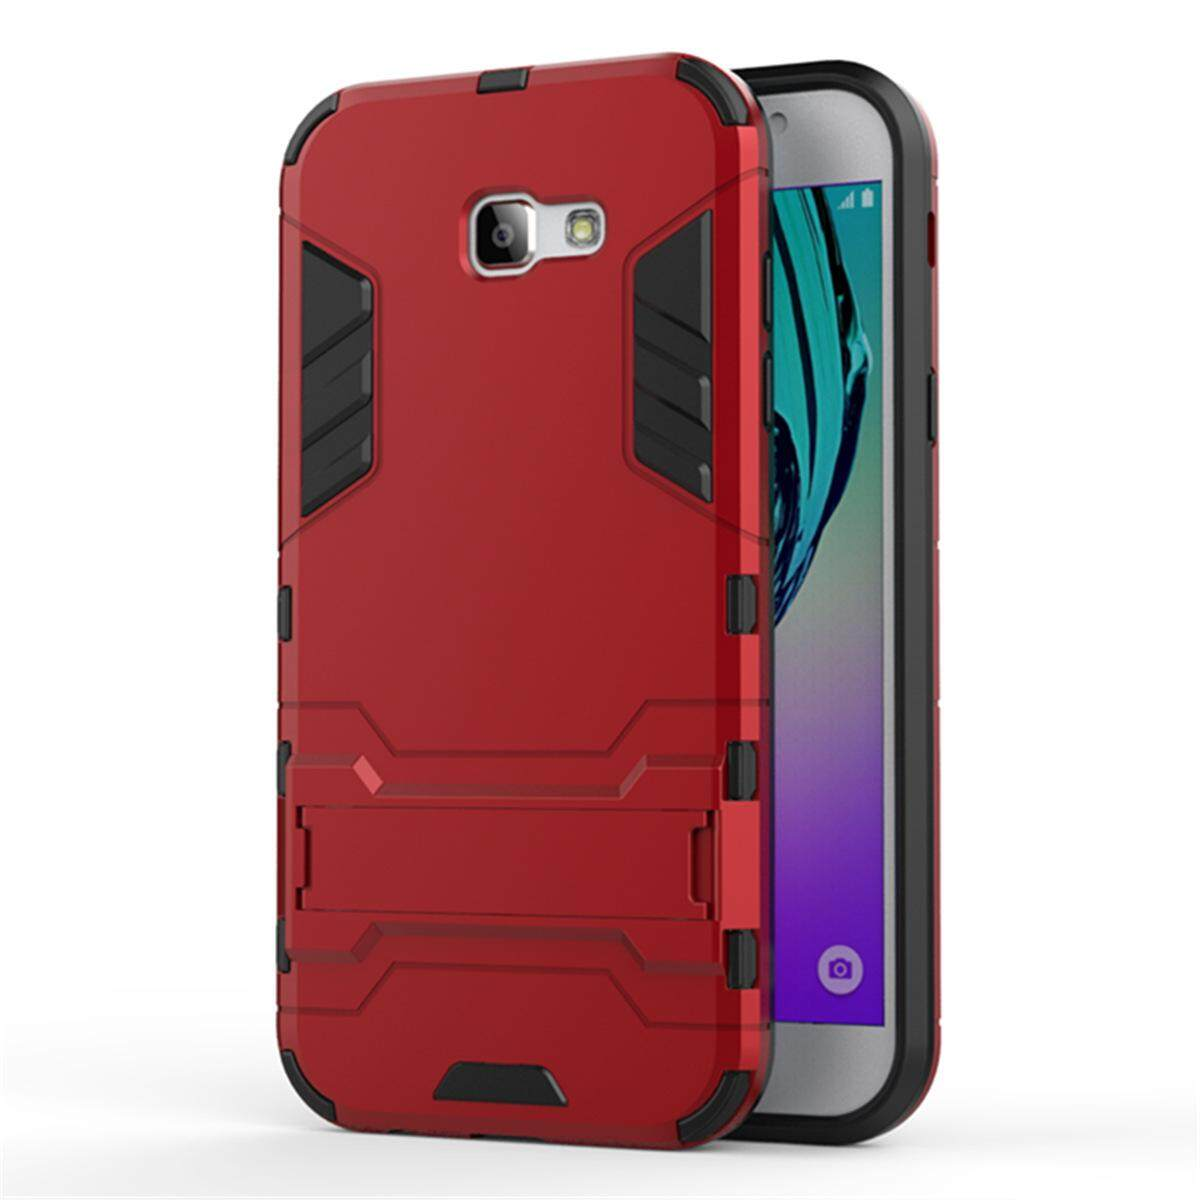 Hình ảnh for Samsung Galaxy A7(2017) Case 2in1 PC+TPU Hybrid Slim Back Case Ultra Thin Armor Cover, with Kickstand Holder, Glossy, Minimalist, Casual